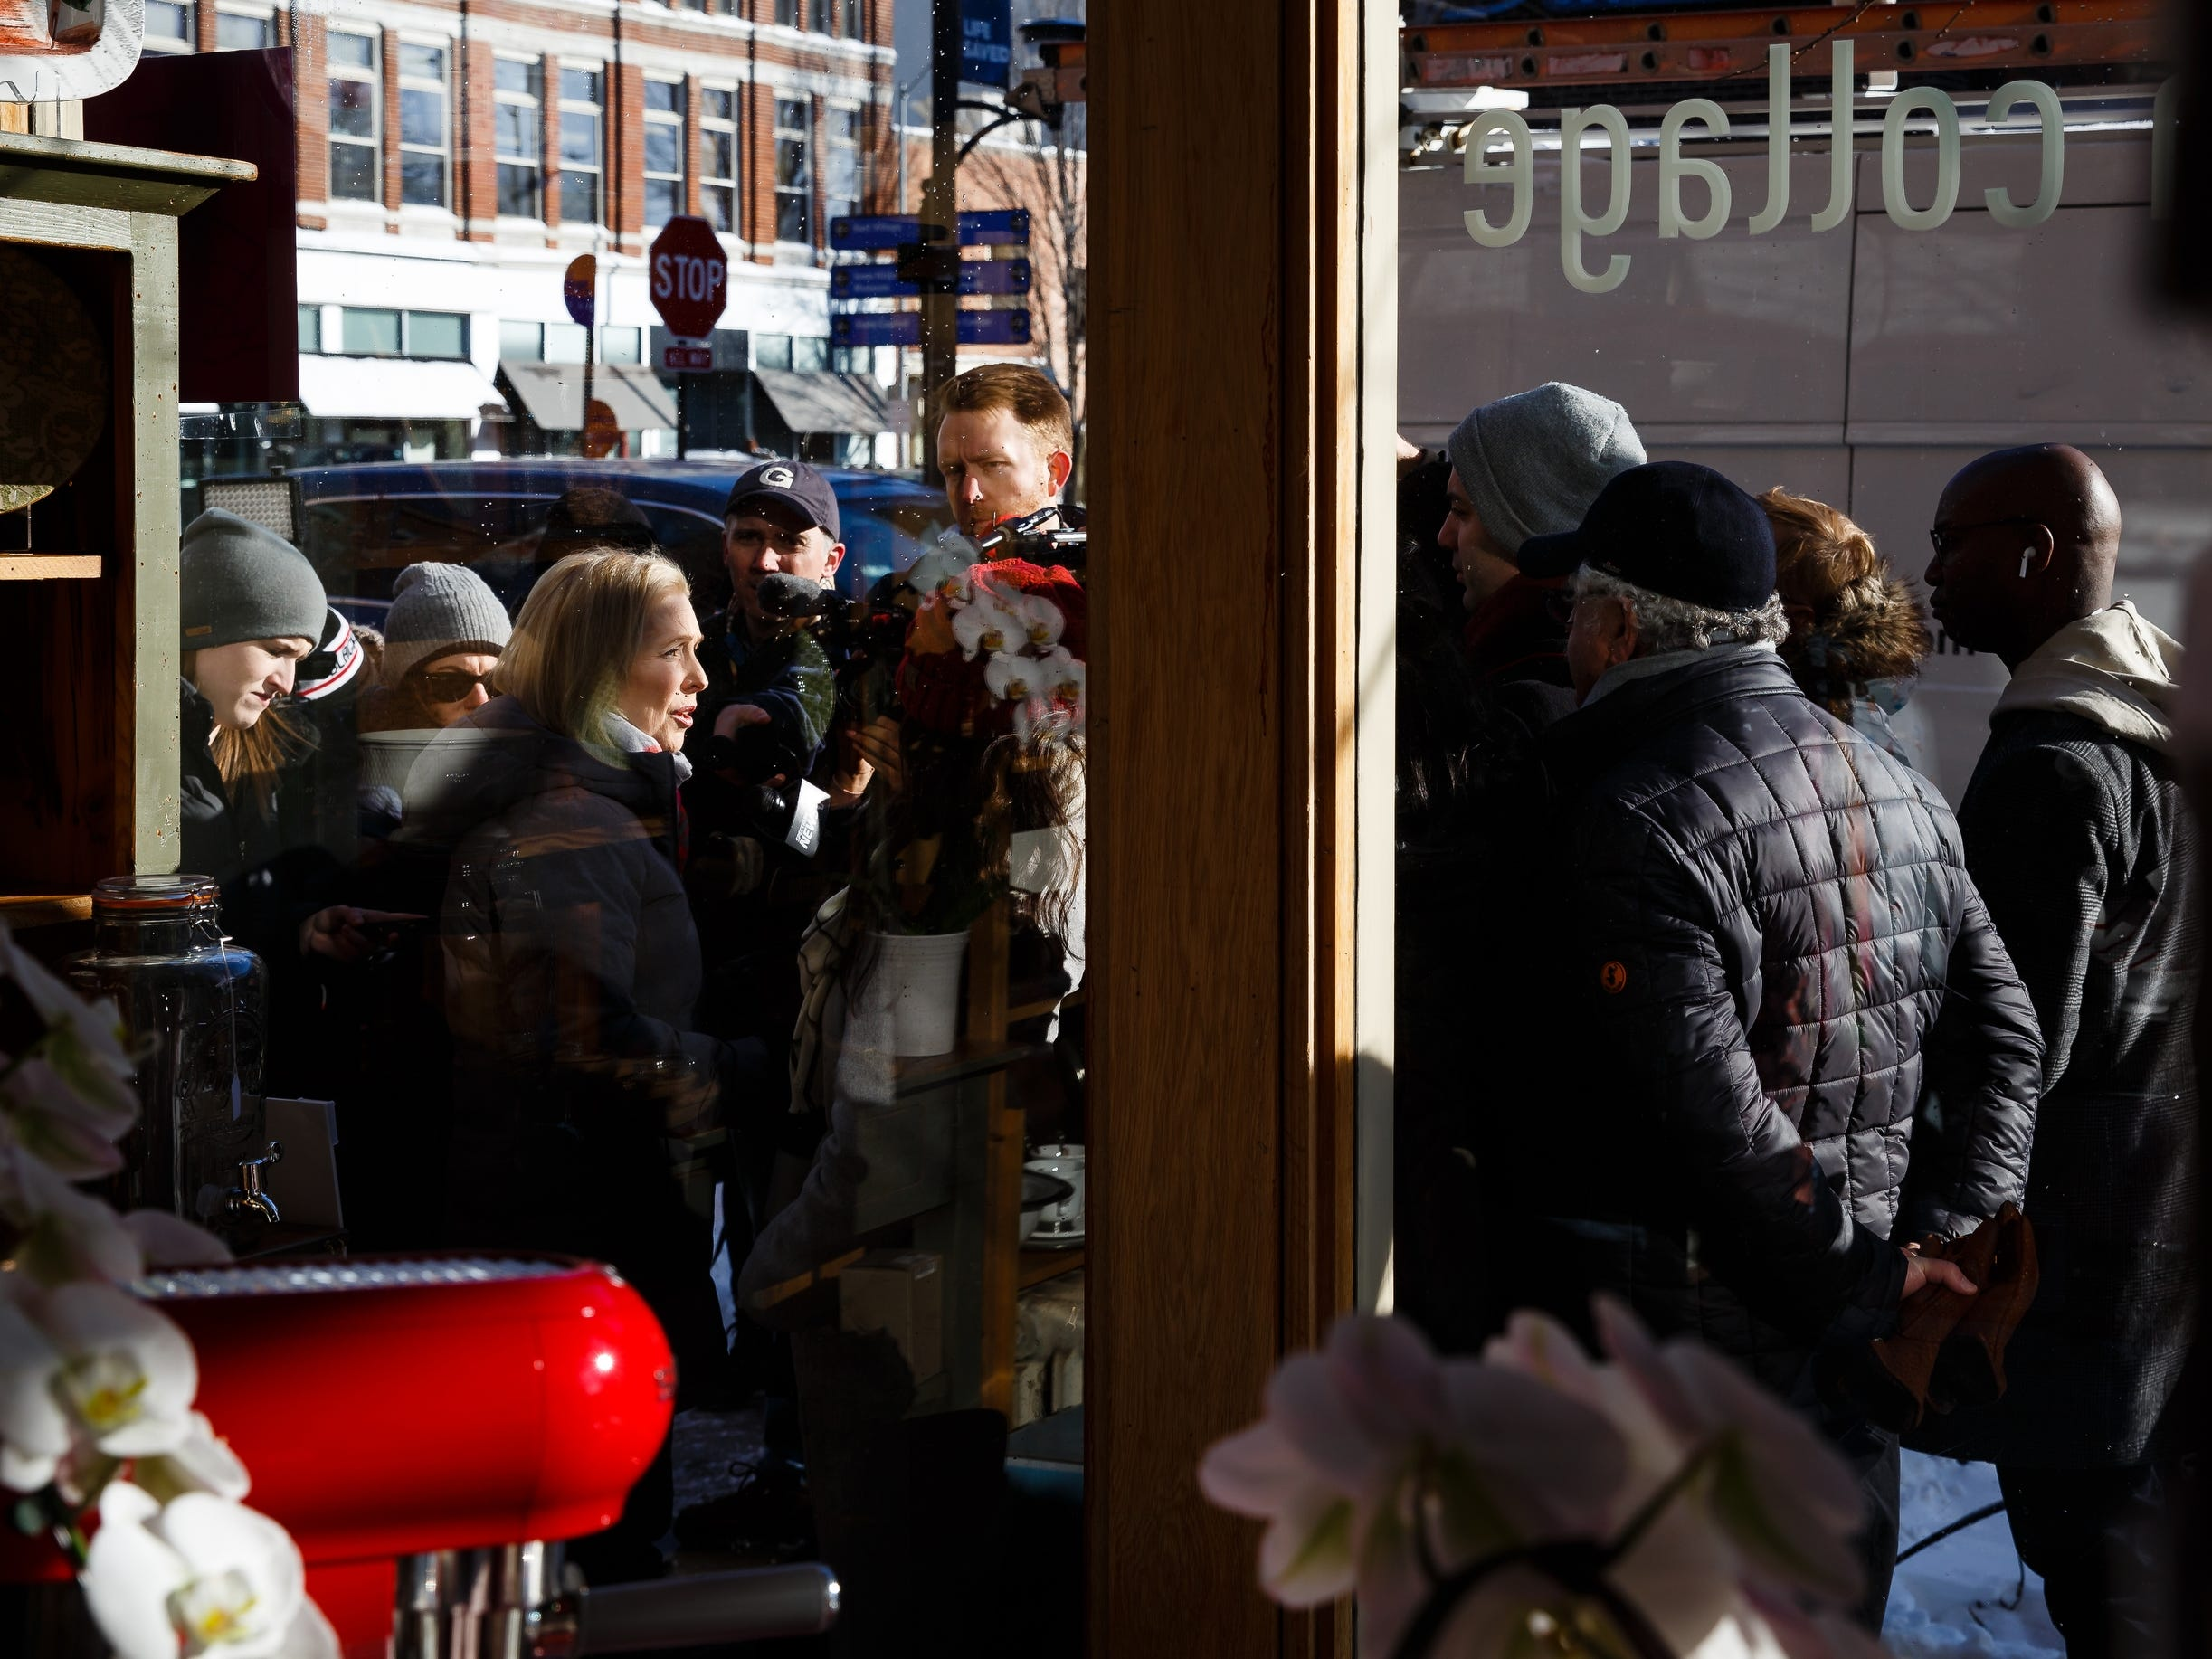 After baking cookies at Kitchen Collage, Sen. Kirsten Gillibrand of New York speaks to members of the press following her walking tour of the East Village on Saturday, Jan. 19, 2019, in Des Moines.